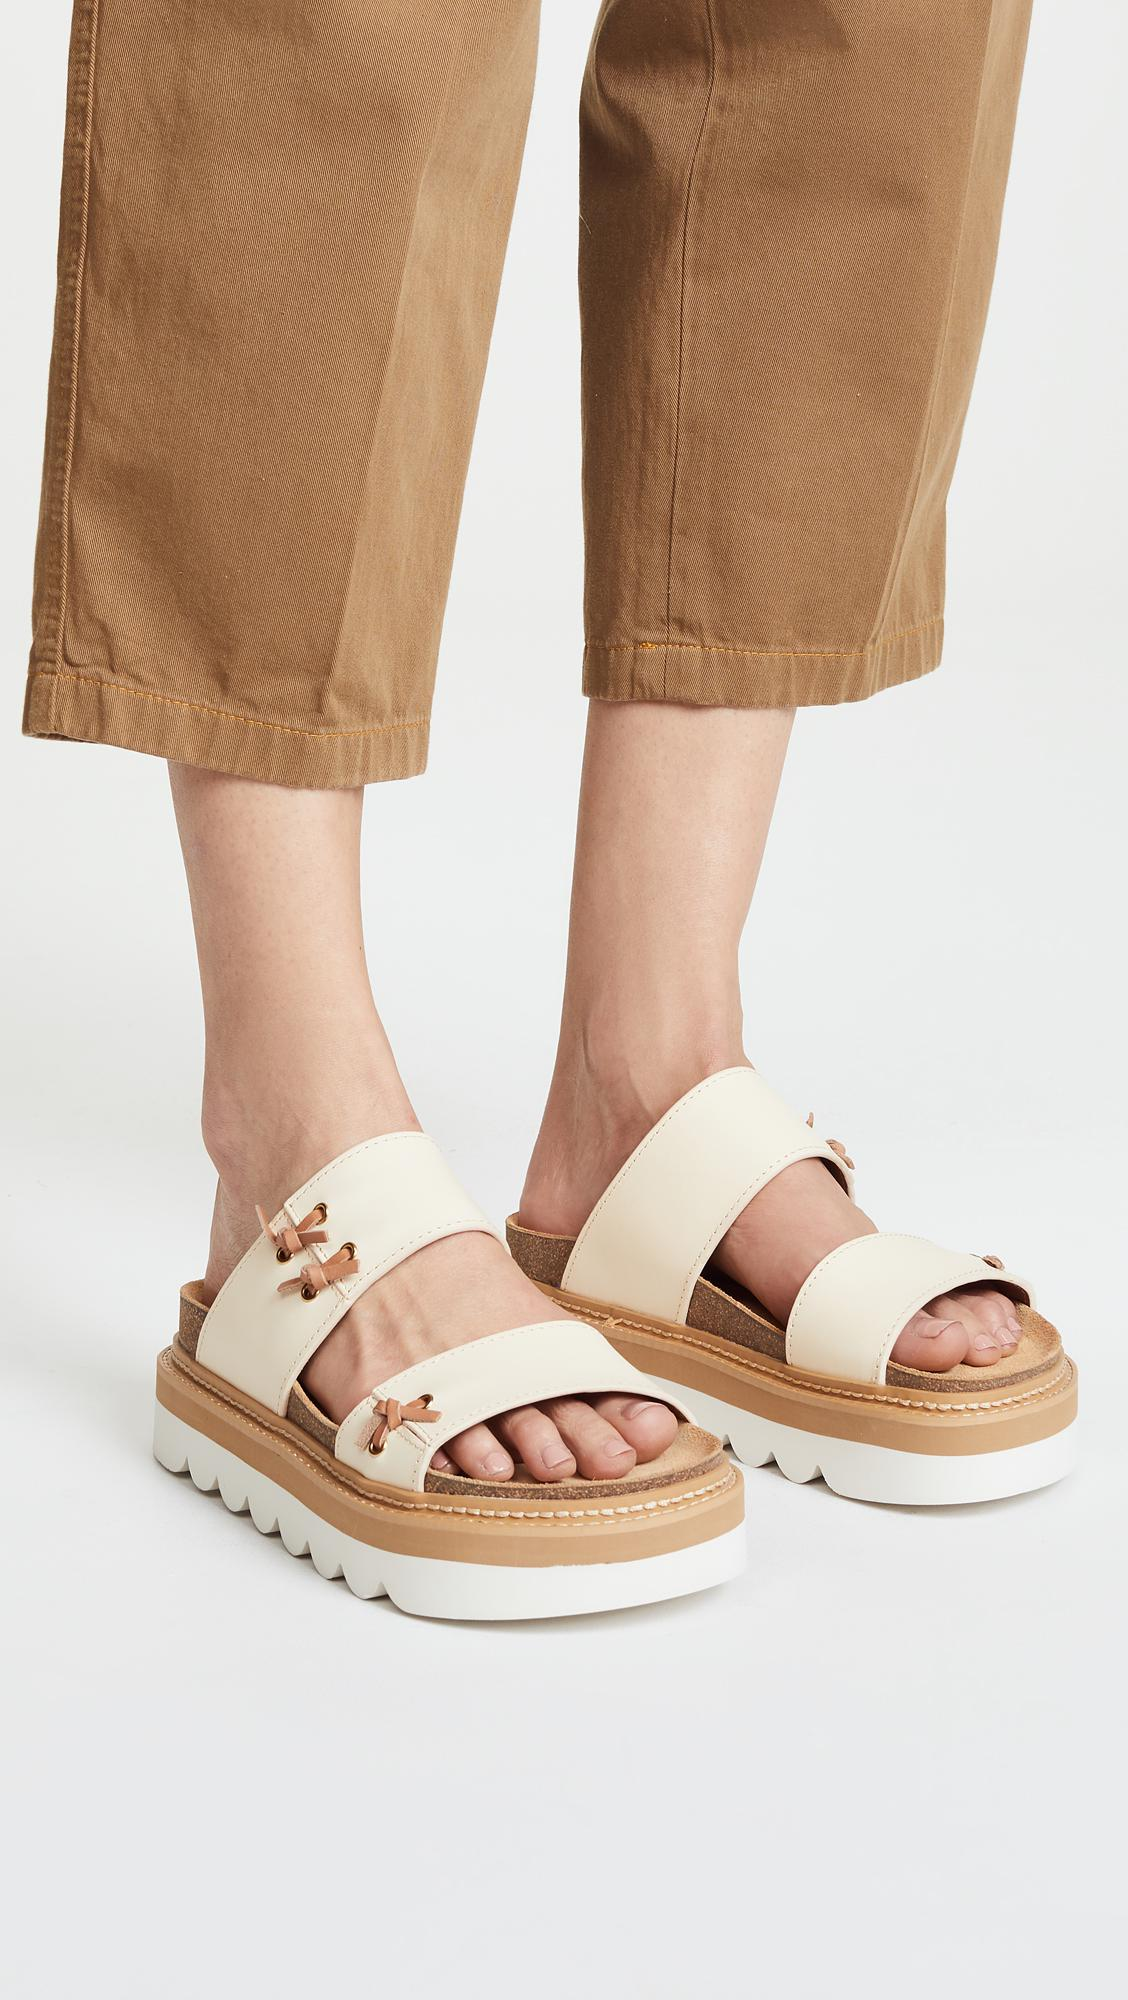 Chloé Platform Slide Sandals w/ Tags browse purchase for sale sneakernews online buy cheap official 2a5AawXiyO